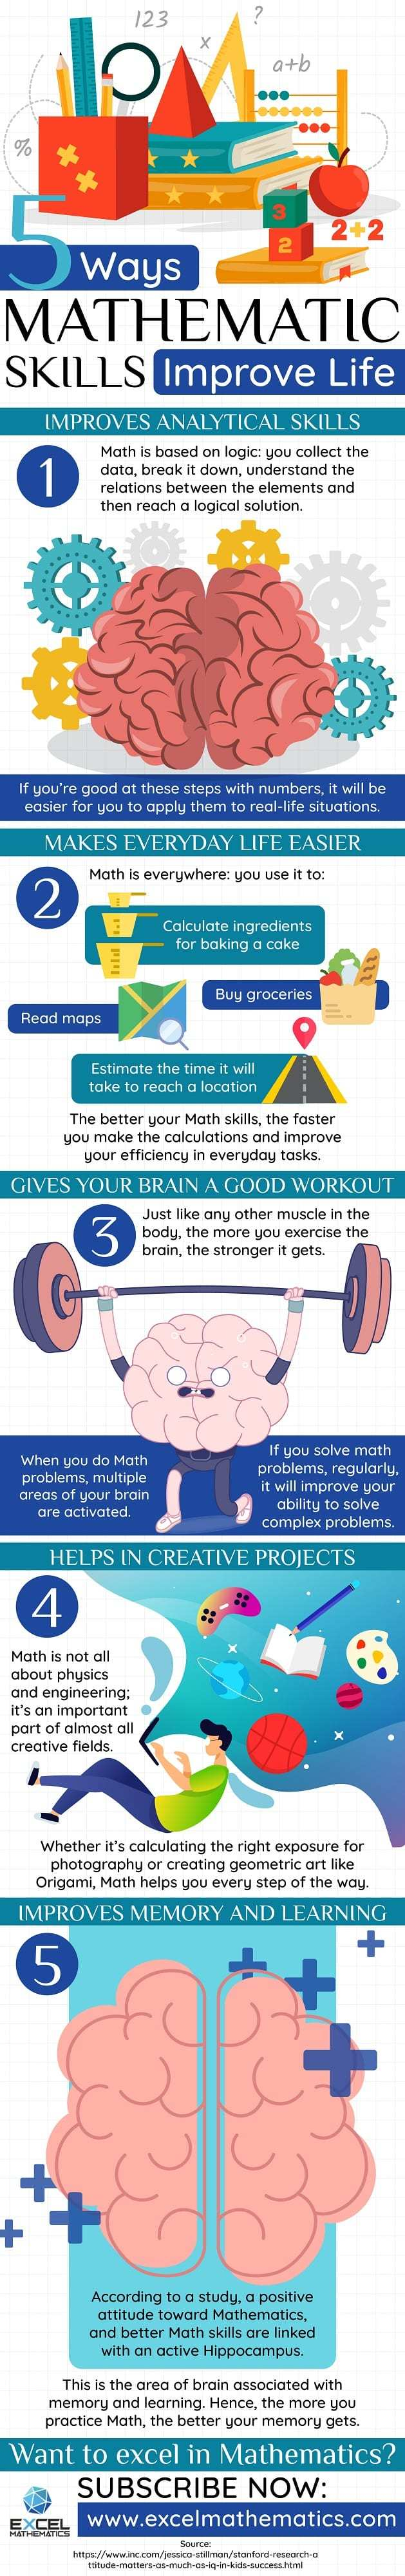 Mathematic Skills Improve Life, 5 Ways Mathematic Skills Improve Life